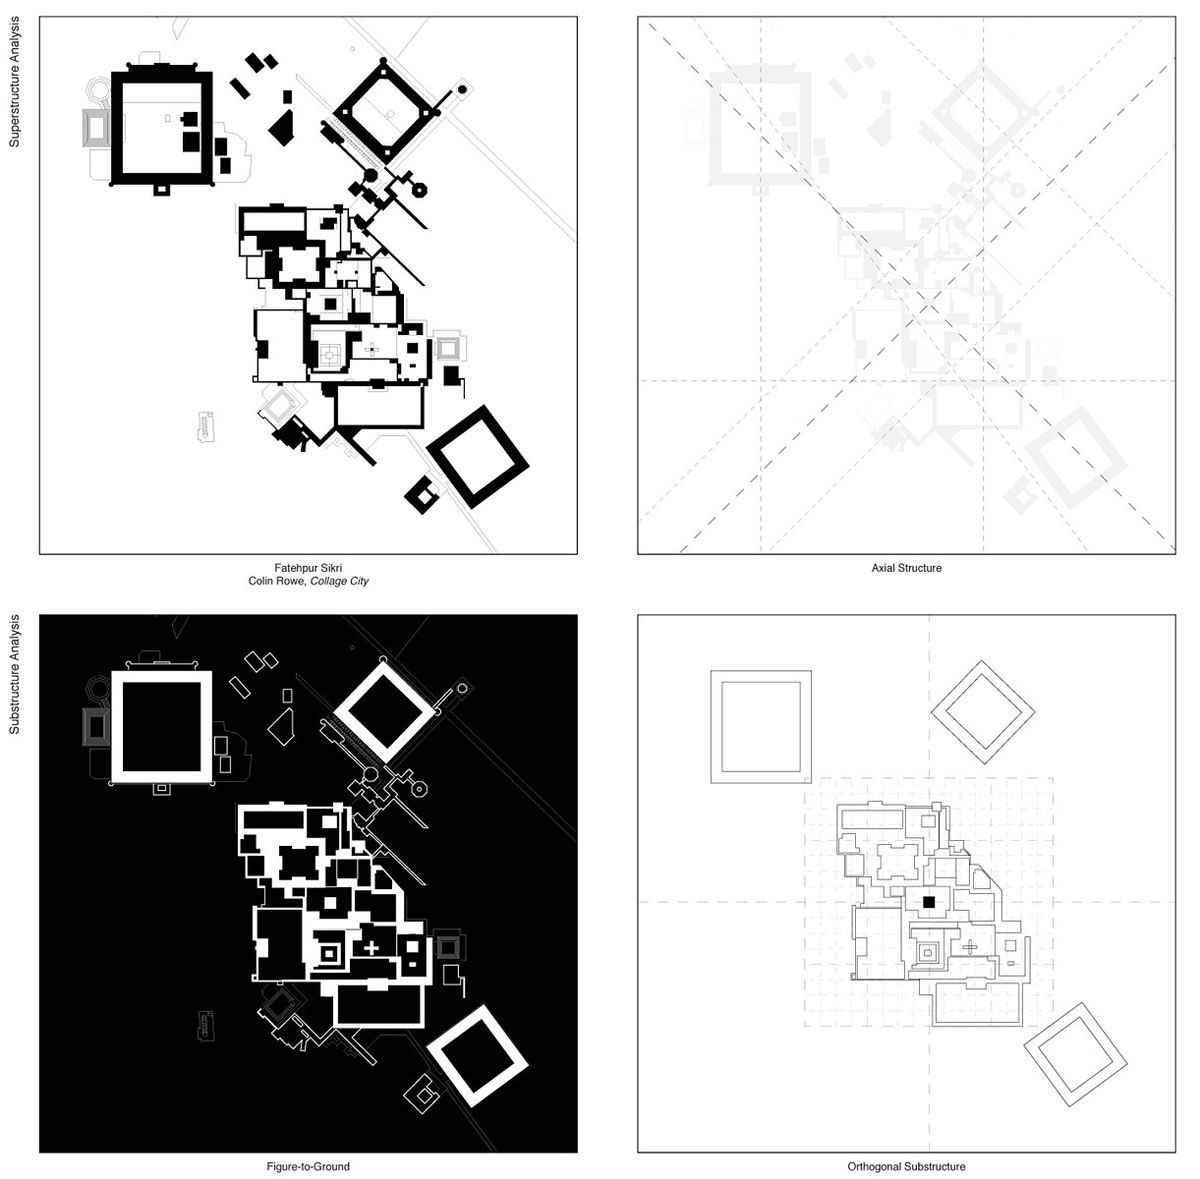 ARCHIPELAGOS: Ungers vs. Rowe | Features | Archinect